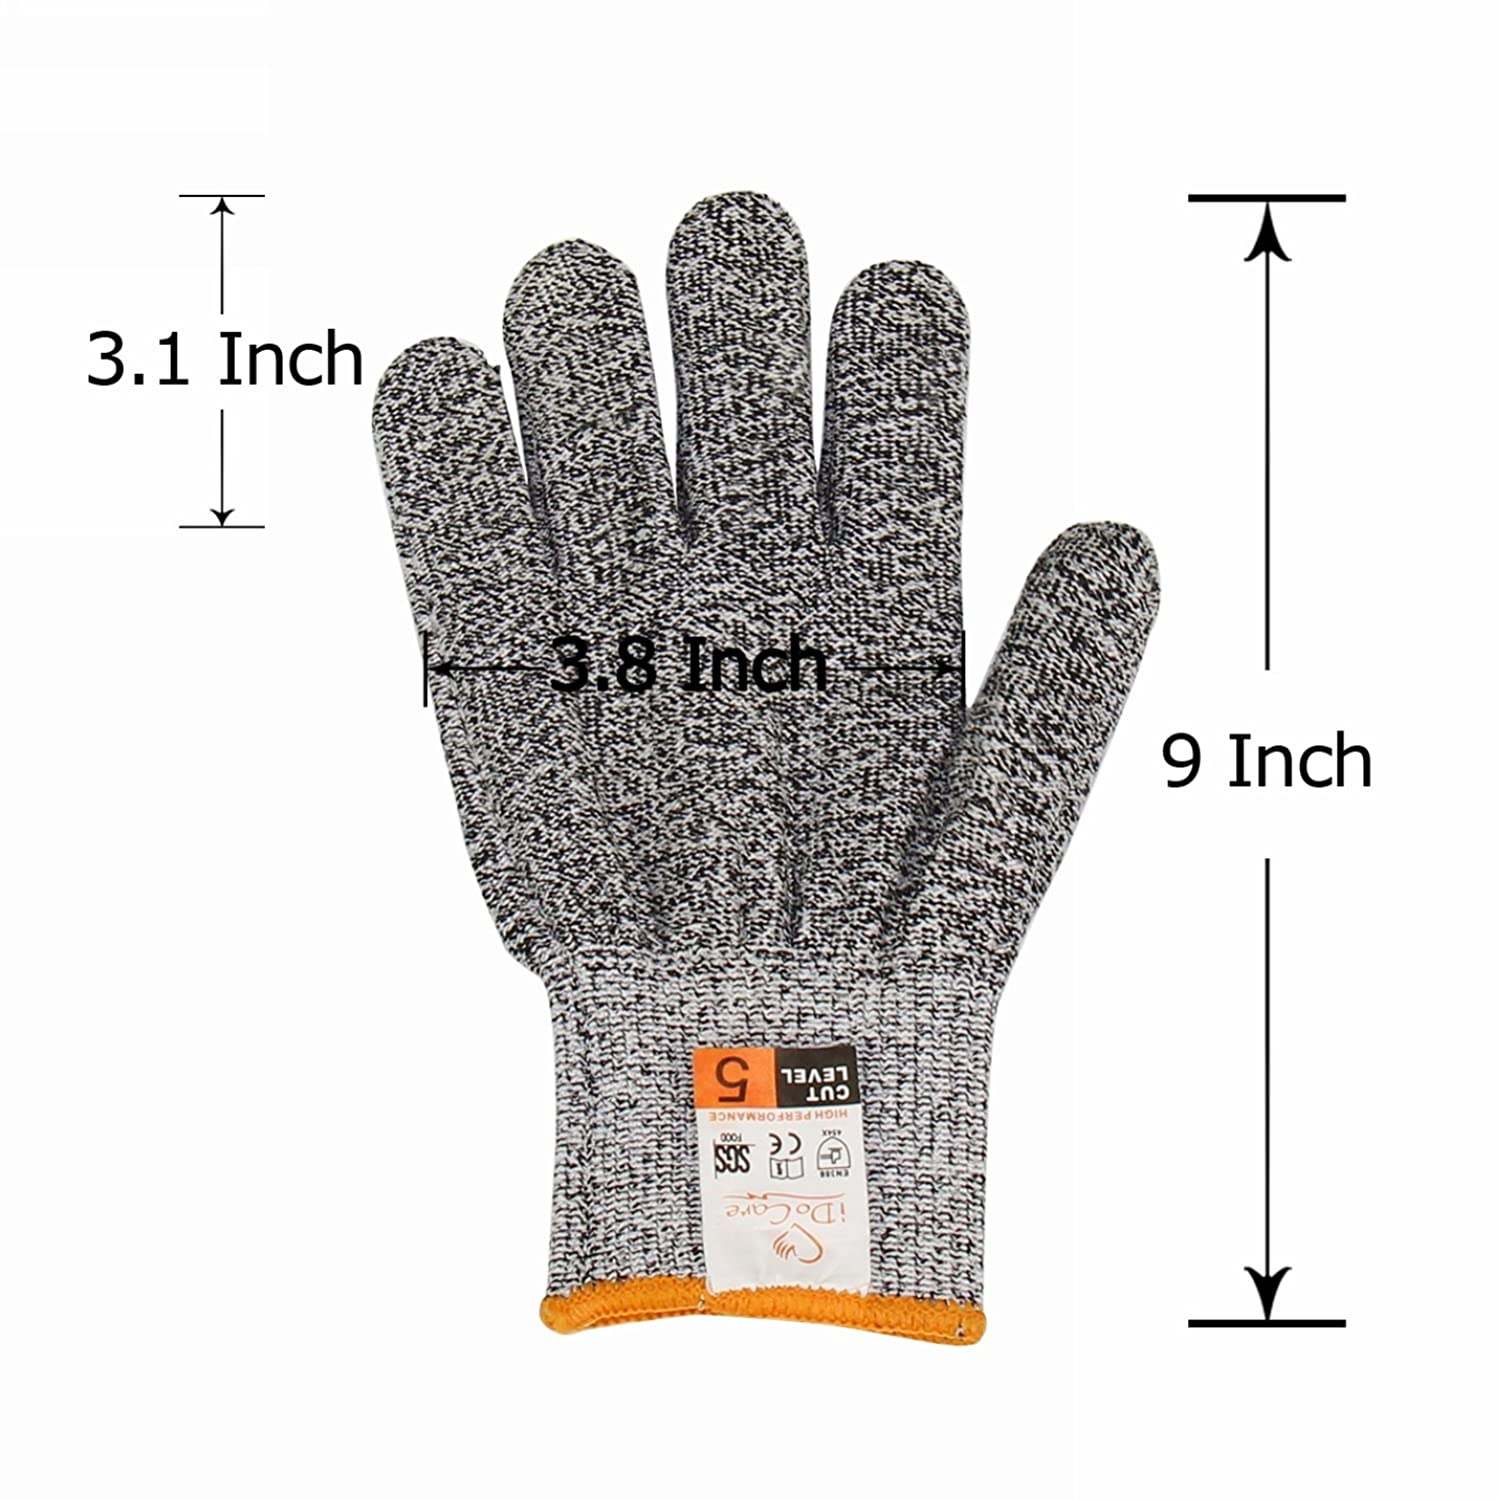 Garden Tools Back To Search Resultstools 1 Pairs Level 5 Against The Cut Gloves Anti-cut Glove Working Gloves Cut Proof Stab Resistant Safety Gloves Fragrant Aroma